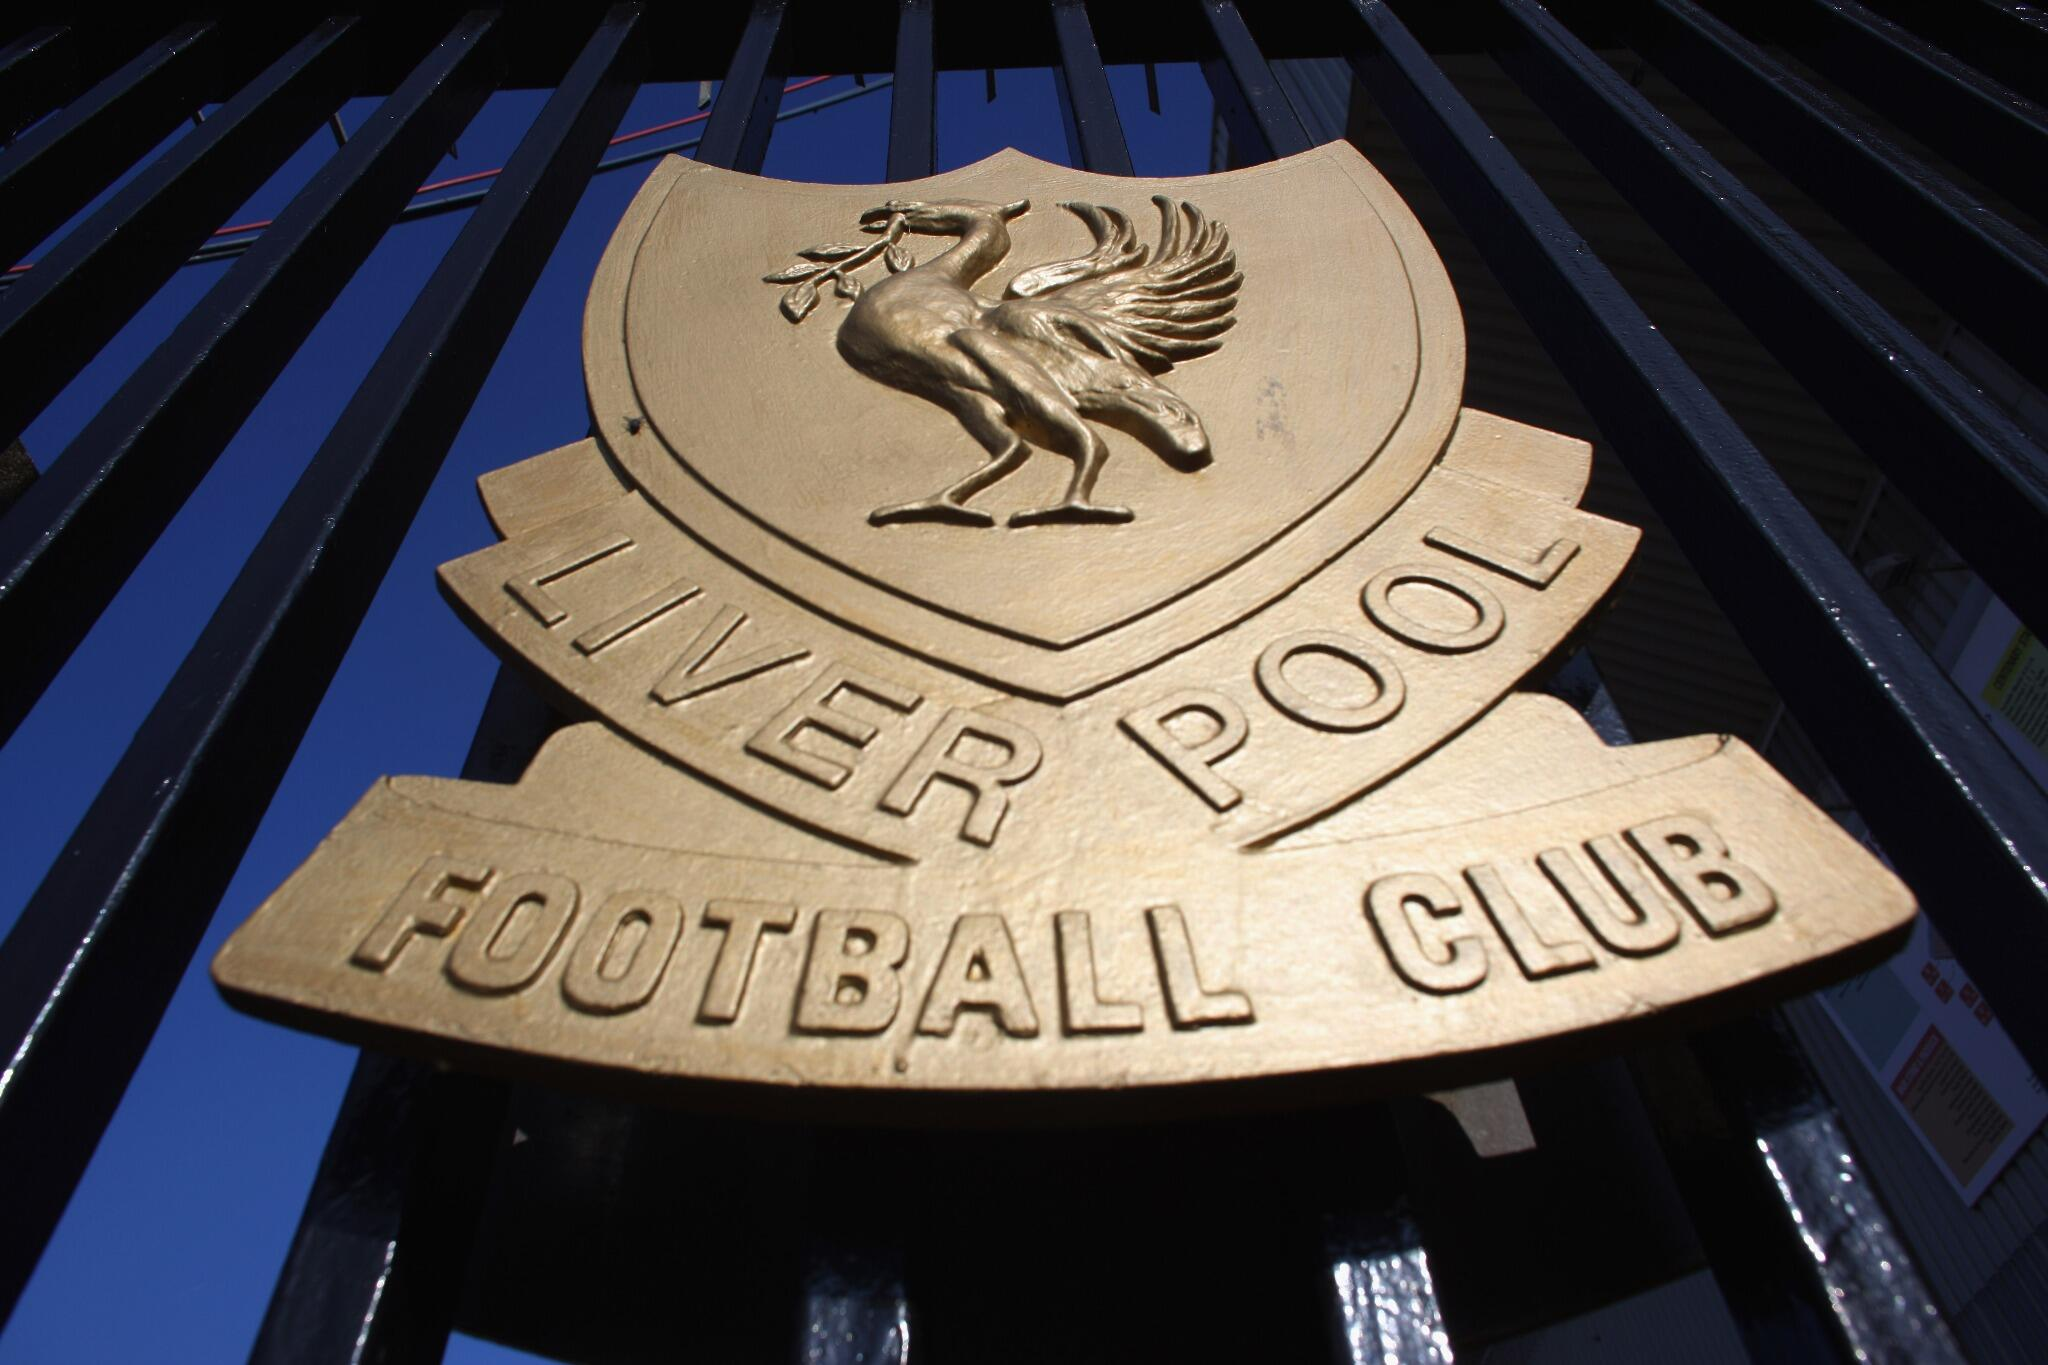 On this day in 1892 #LFC played their first ever competitive game against Higher Walton at Anfield - the Reds won 8-0 http://t.co/sEdc2ScP56